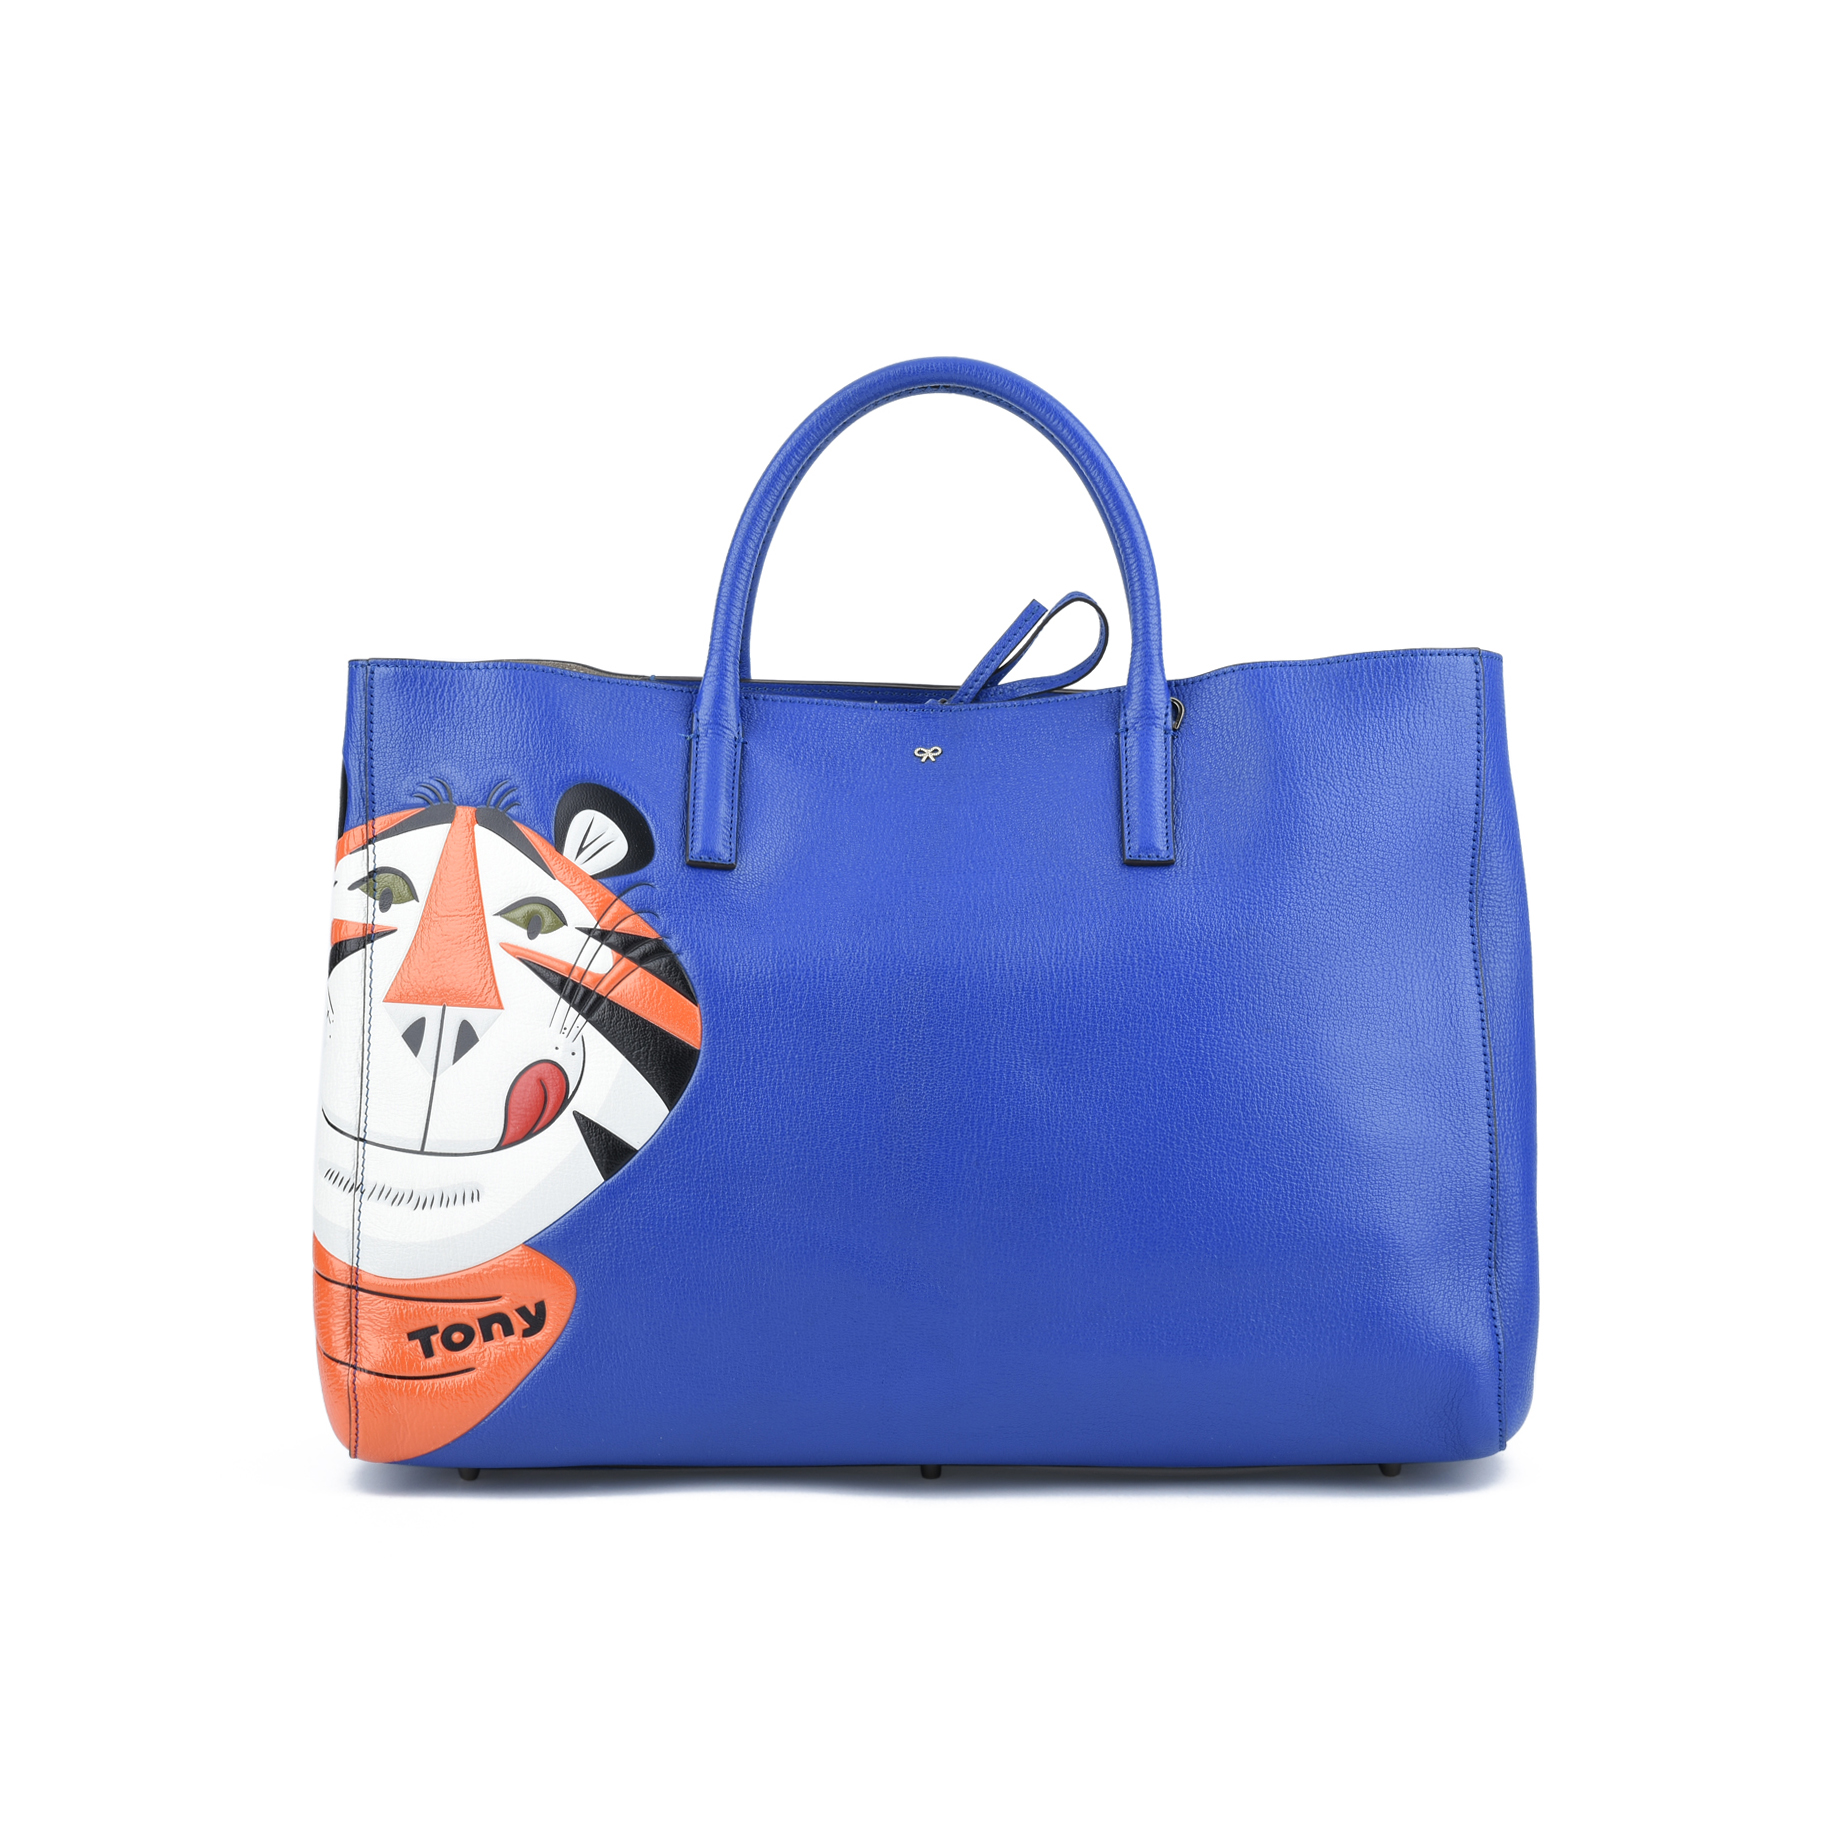 c9751a7703 Authentic Second Hand Anya Hindmarch Ebury Maxi Frosties Tote  (PSS-193-00110) - THE FIFTH COLLECTION